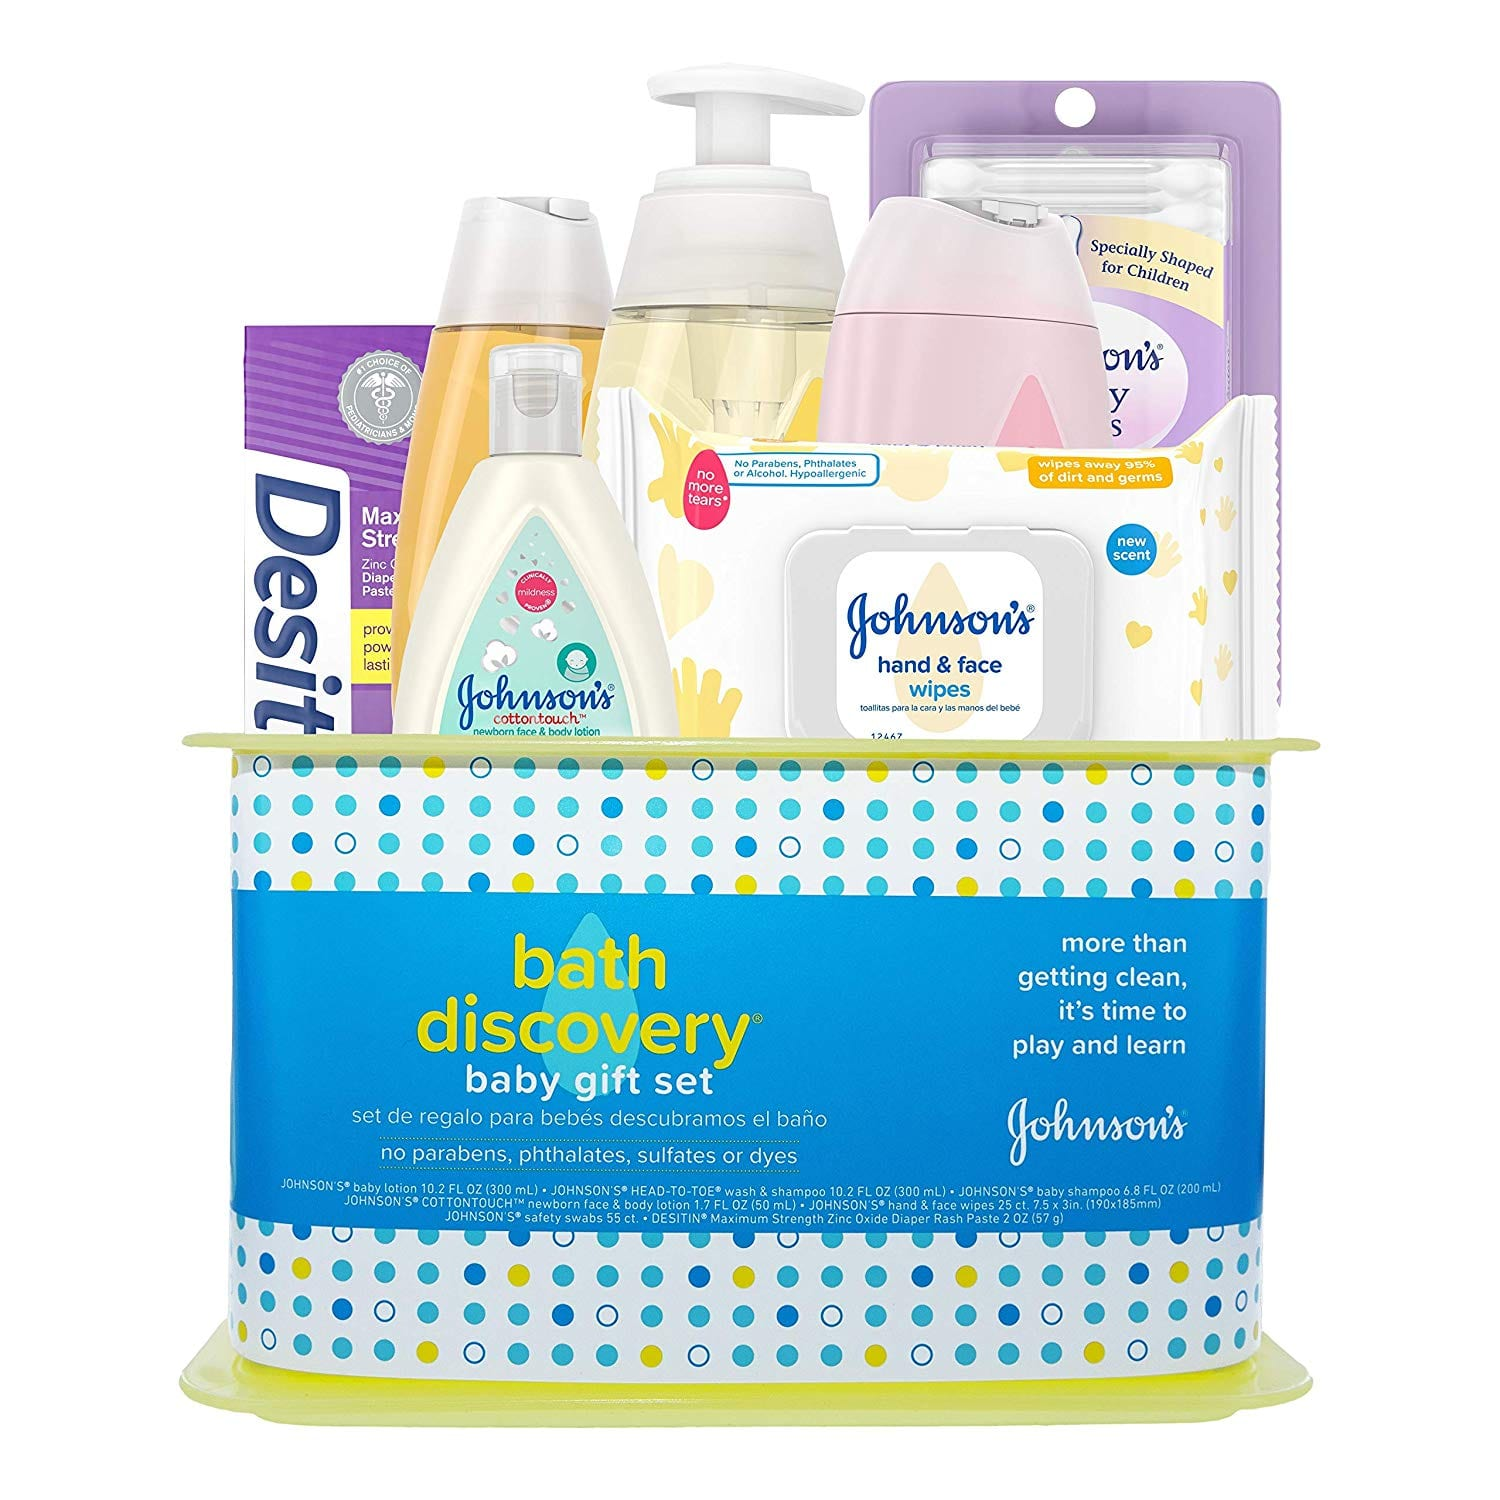 Johnson's Bath Discovery Baby Gift Set, Baby Bath Time Essentials for Parents-to-Be, 7 Items at Amazon $15.38